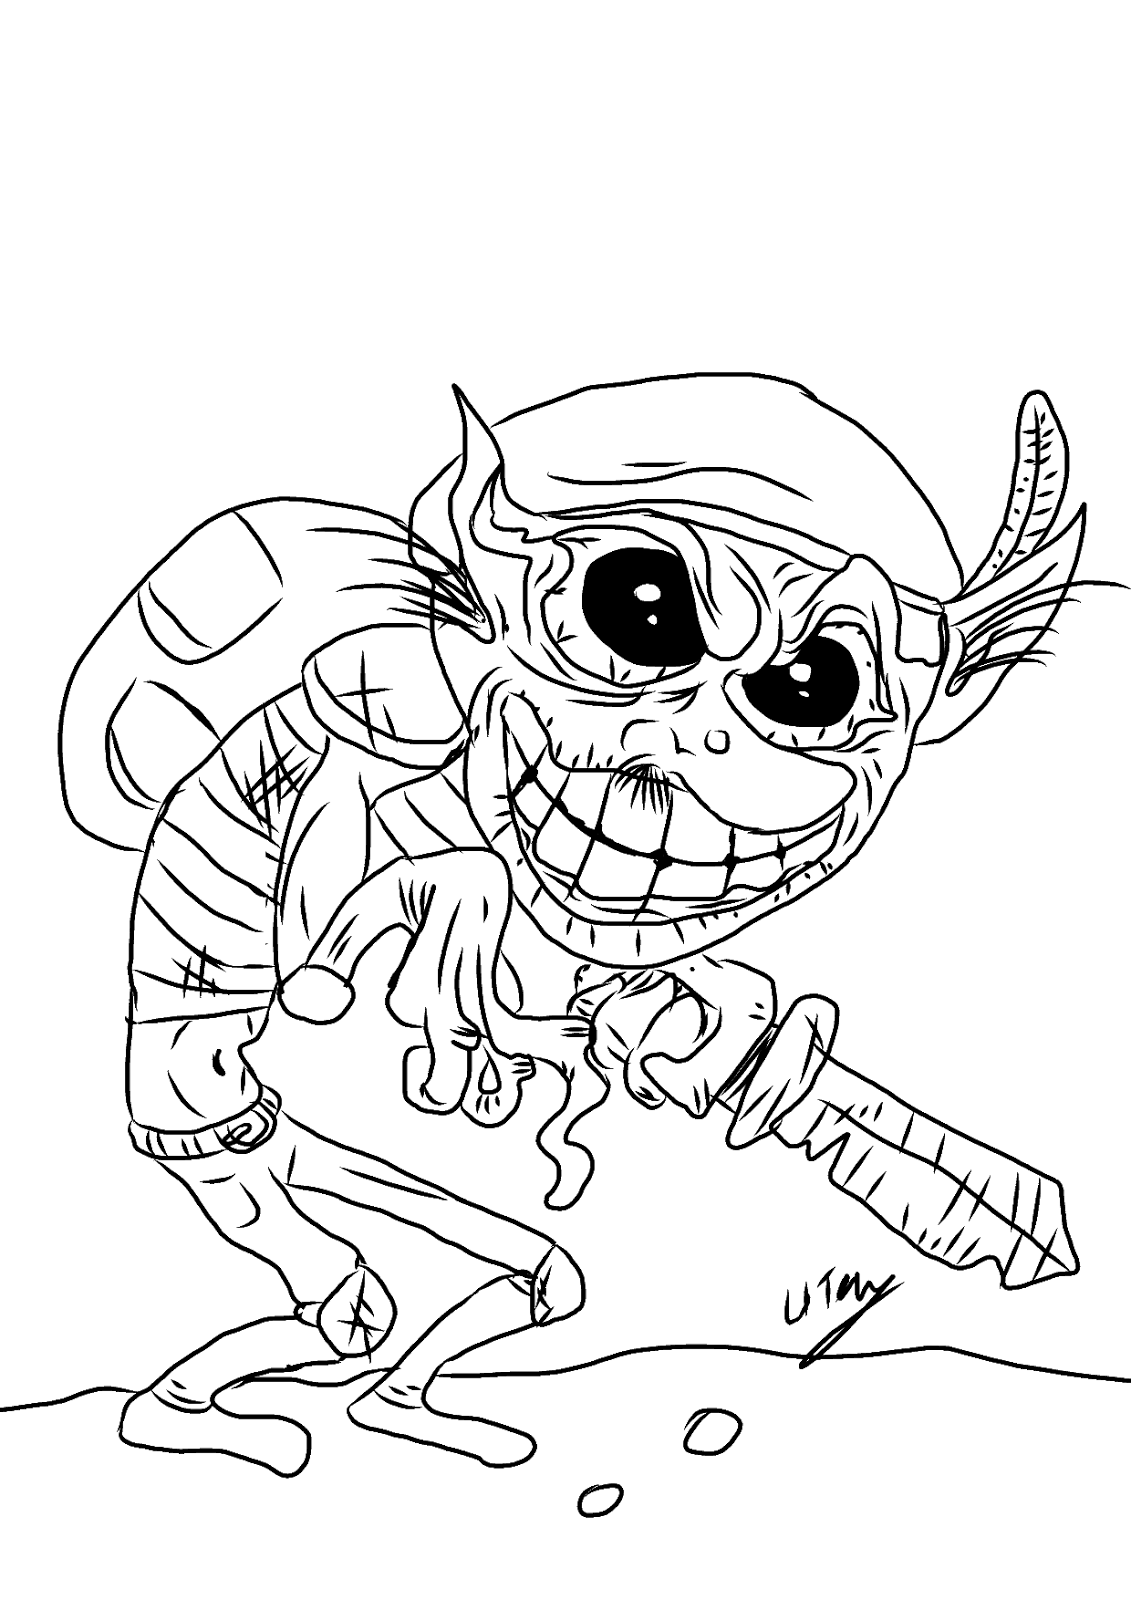 goblin pictures to color goblin coloring pages at getcoloringscom free printable goblin pictures to color